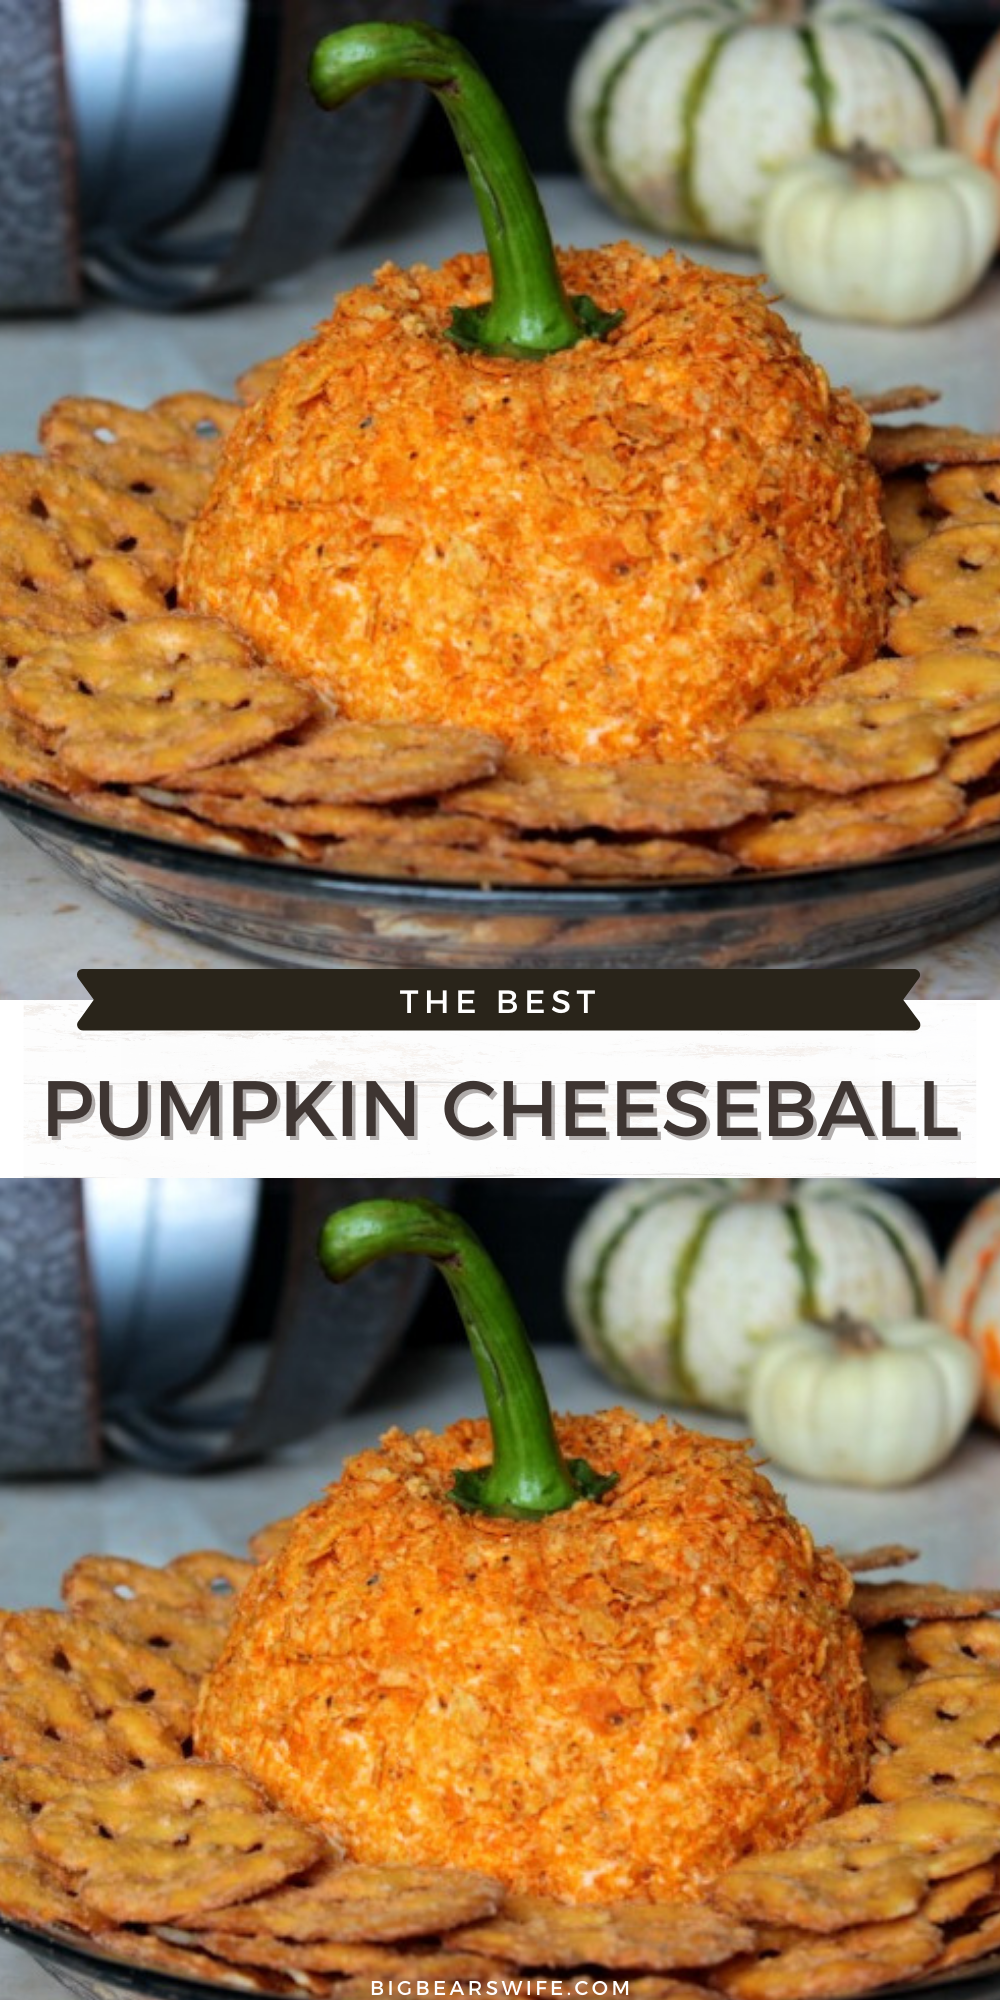 Pumpkin Cheeseball - This pumpkin cheeseball has been making an appearance at our Thanksgiving dinners for a few years now! We love digging into it while we wait for Thanksgiving dinner to finish cooking!